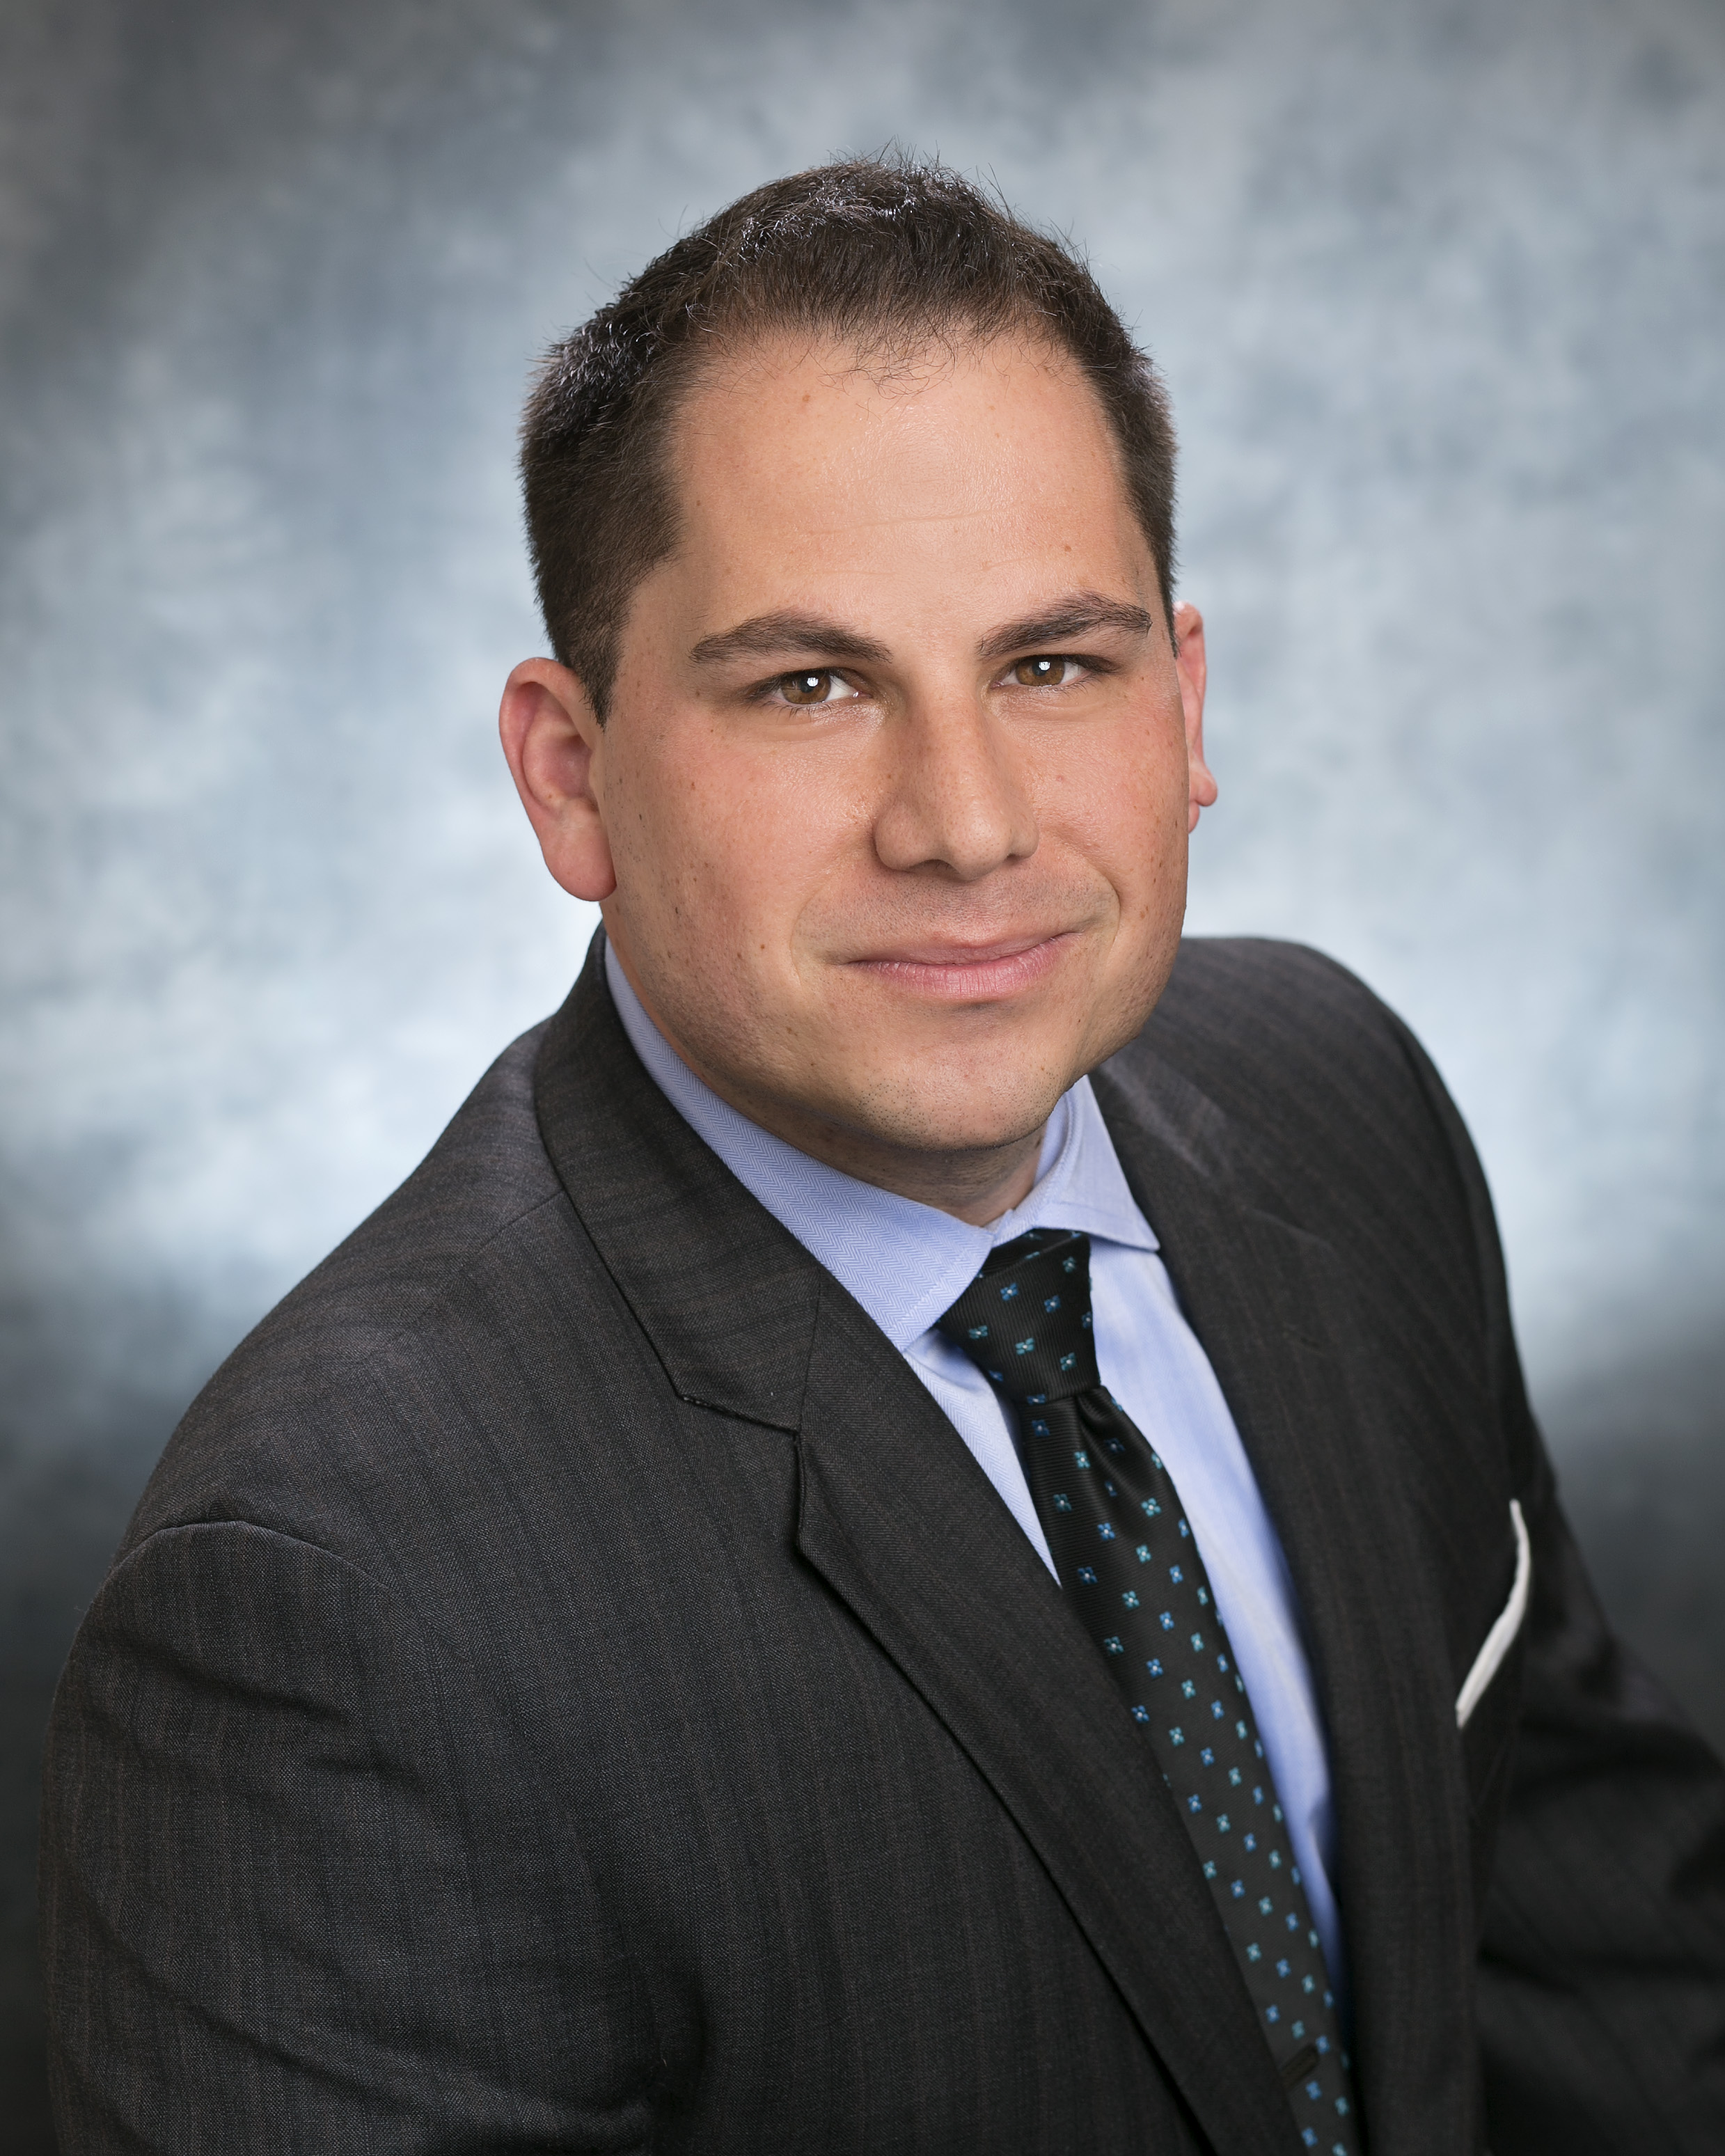 Attorney Richard J. Calabrese